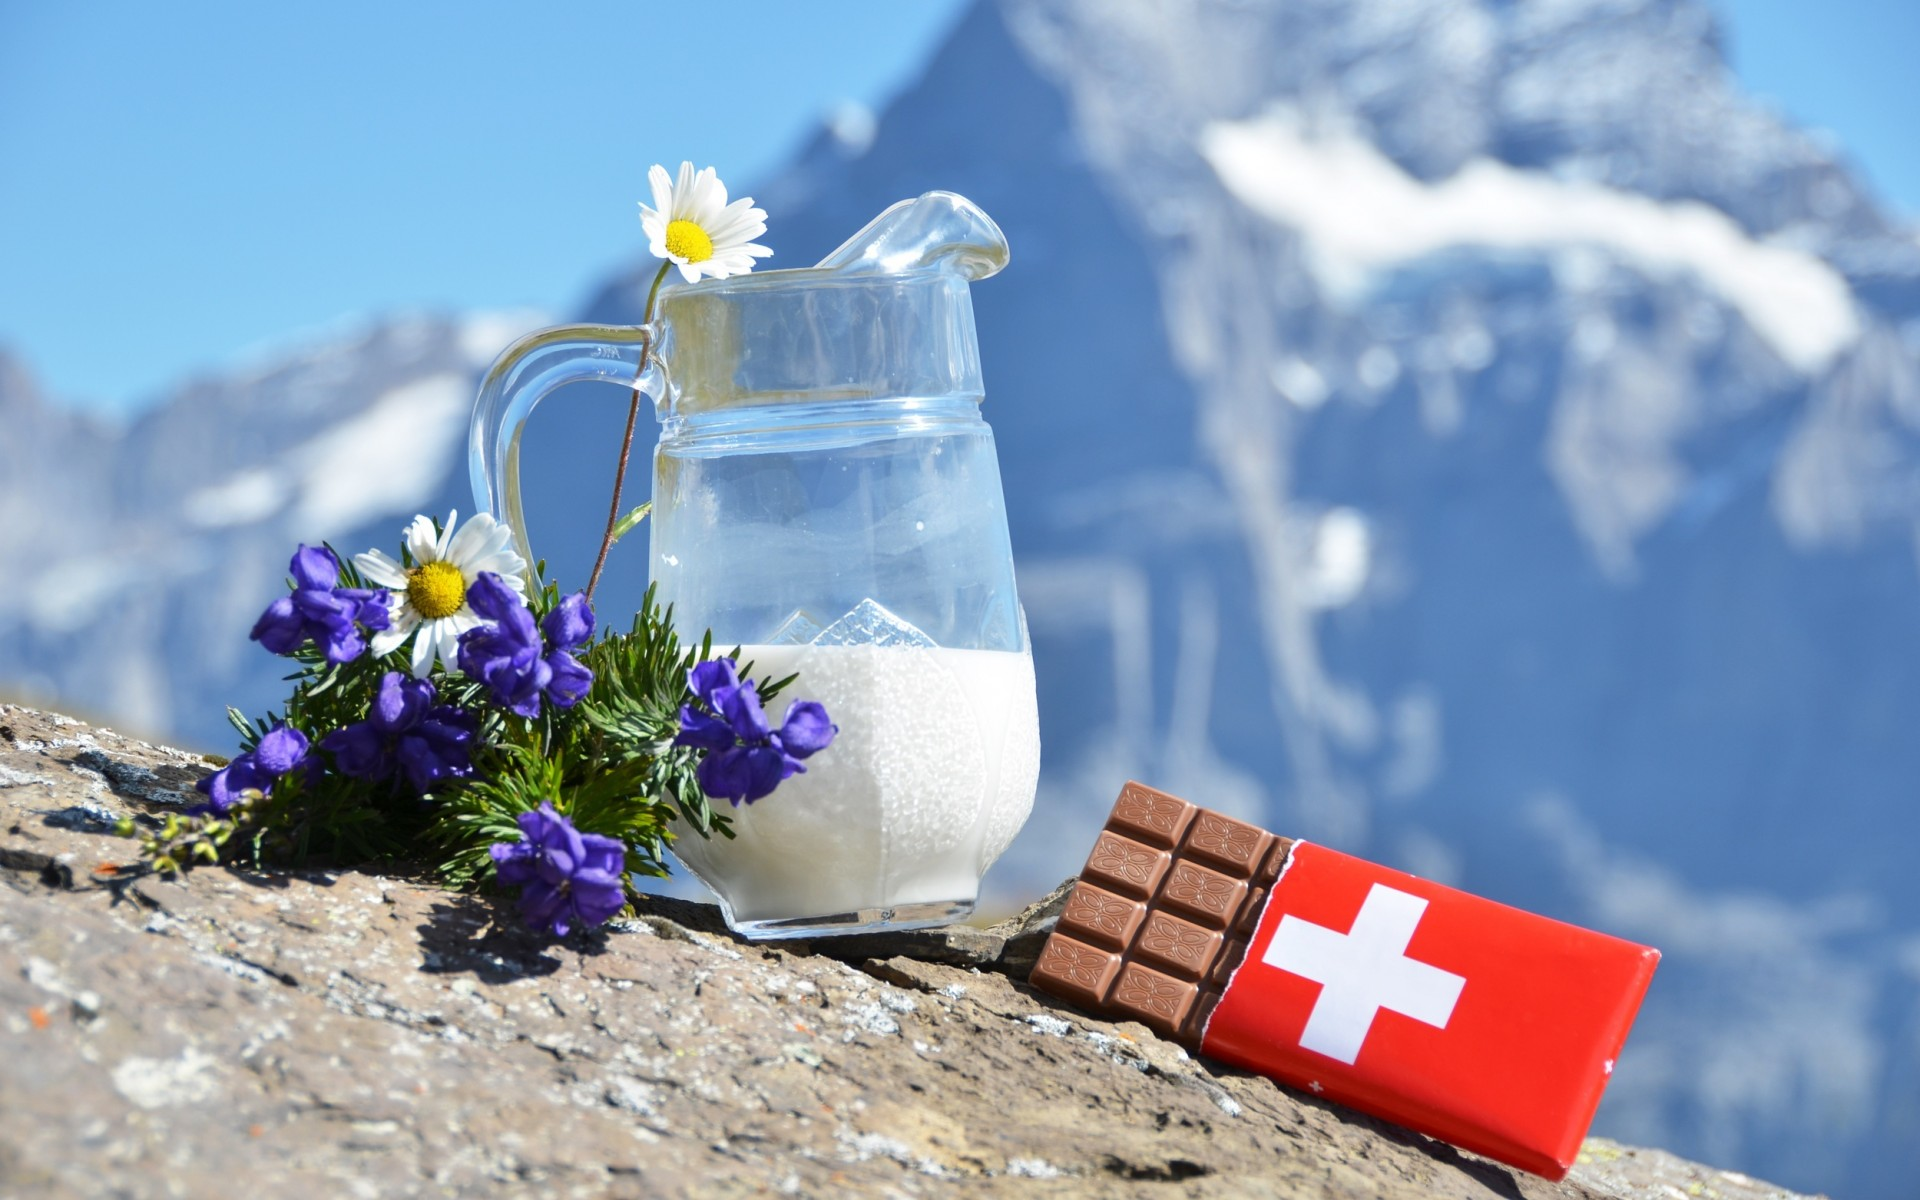 Things you didn't know about Switzerland